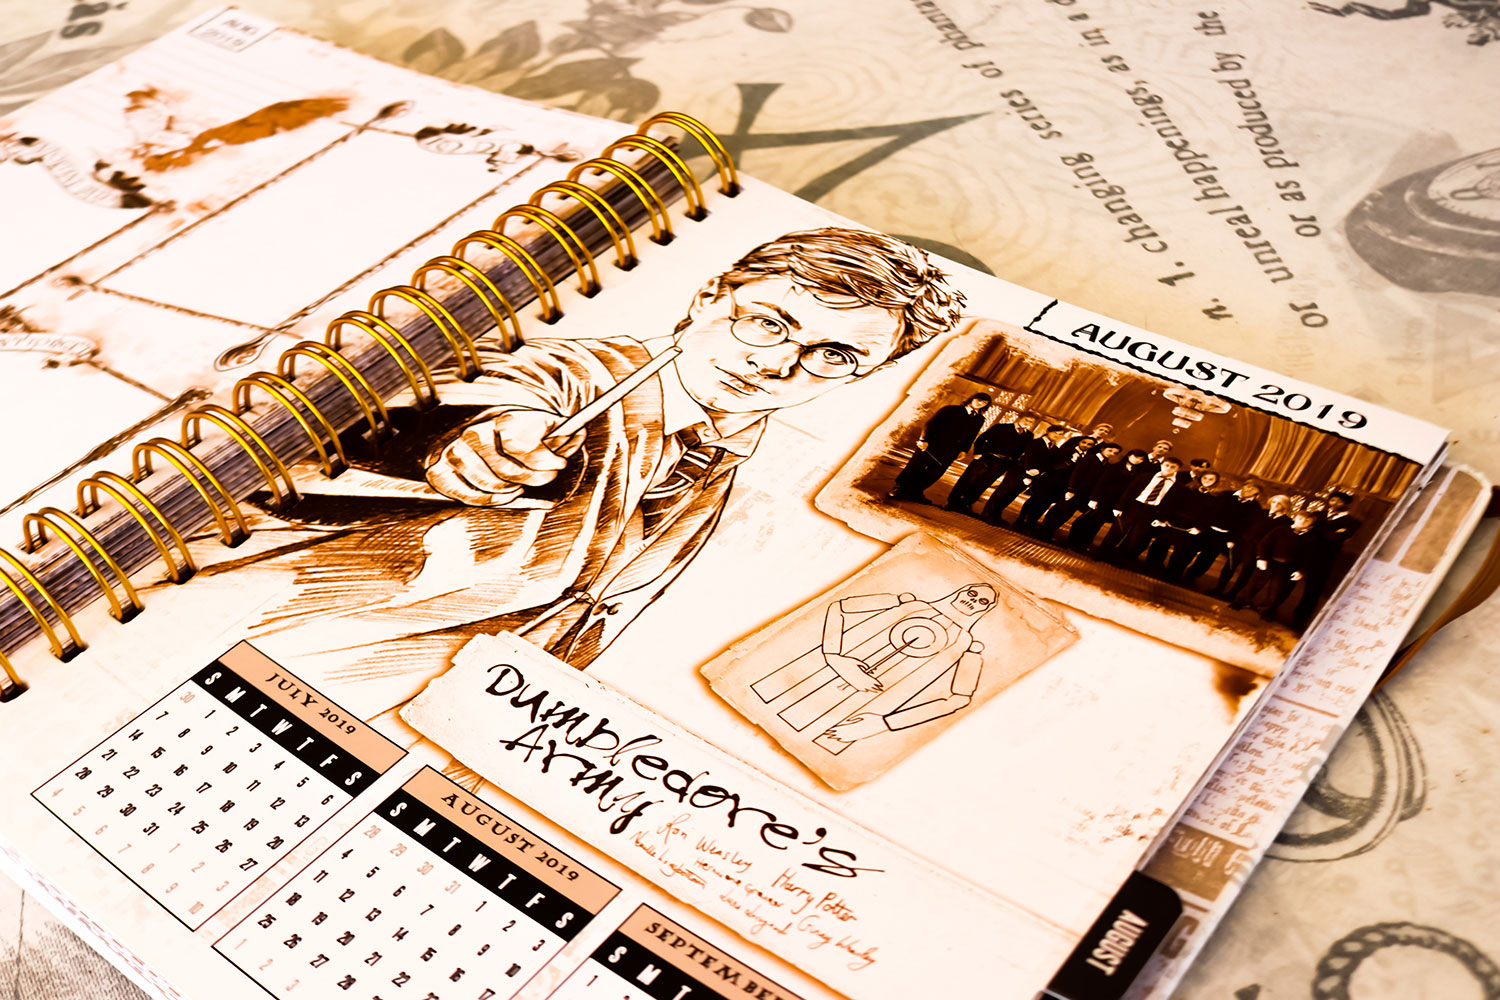 August 2019 page from the Harry Potter weekly planner featuring a sketch of Harry Potter and Dumbledore's Army signatures